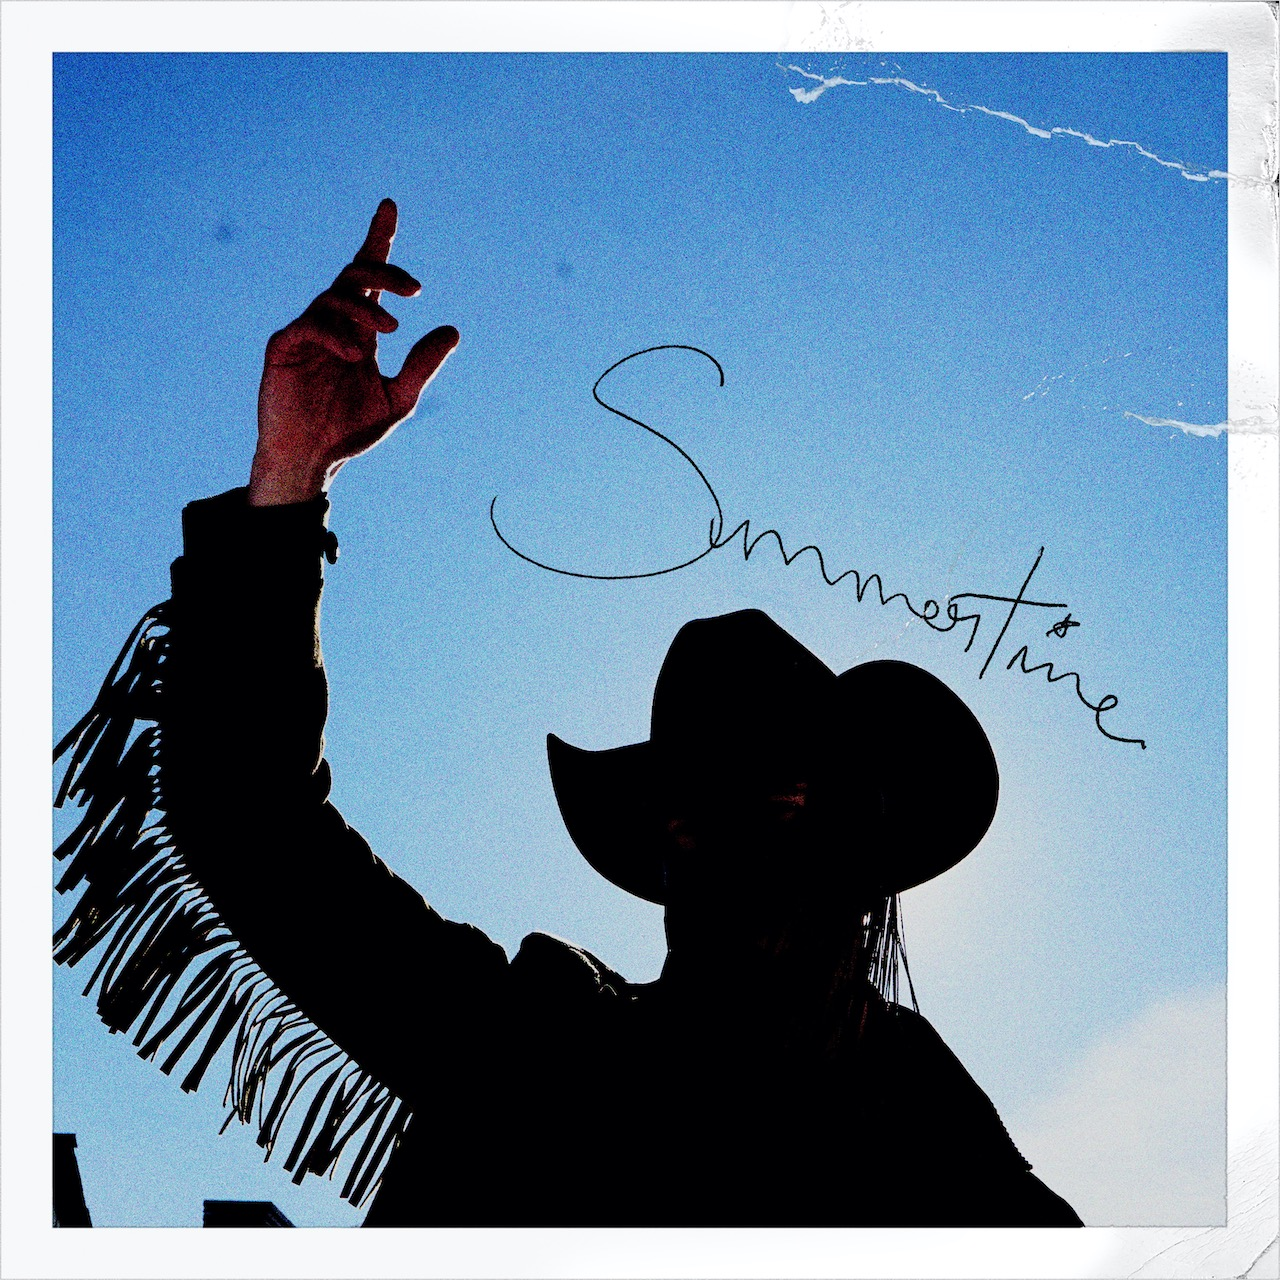 Orville Peck Summertime Cover Art . Courtesy of the Columbia Records. Used with permission.